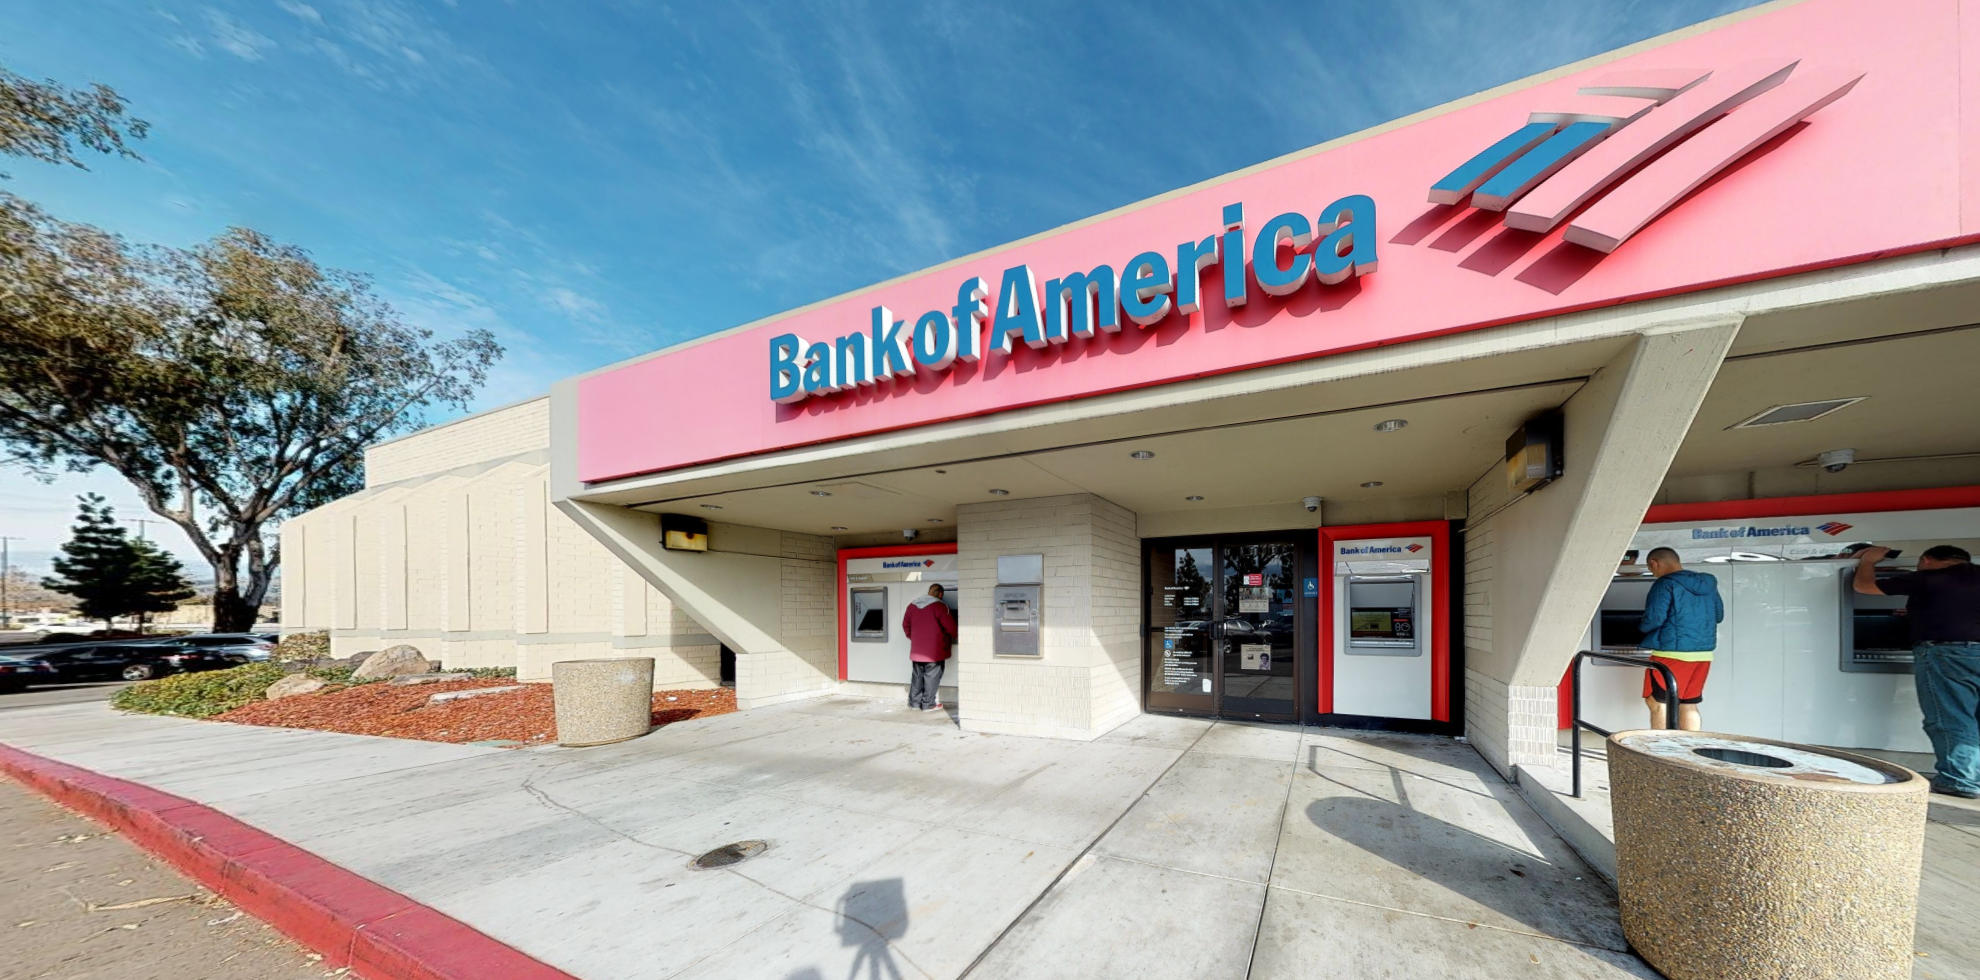 Bank of America financial center with walk-up ATM | 2225 Quimby Rd, San Jose, CA 95122